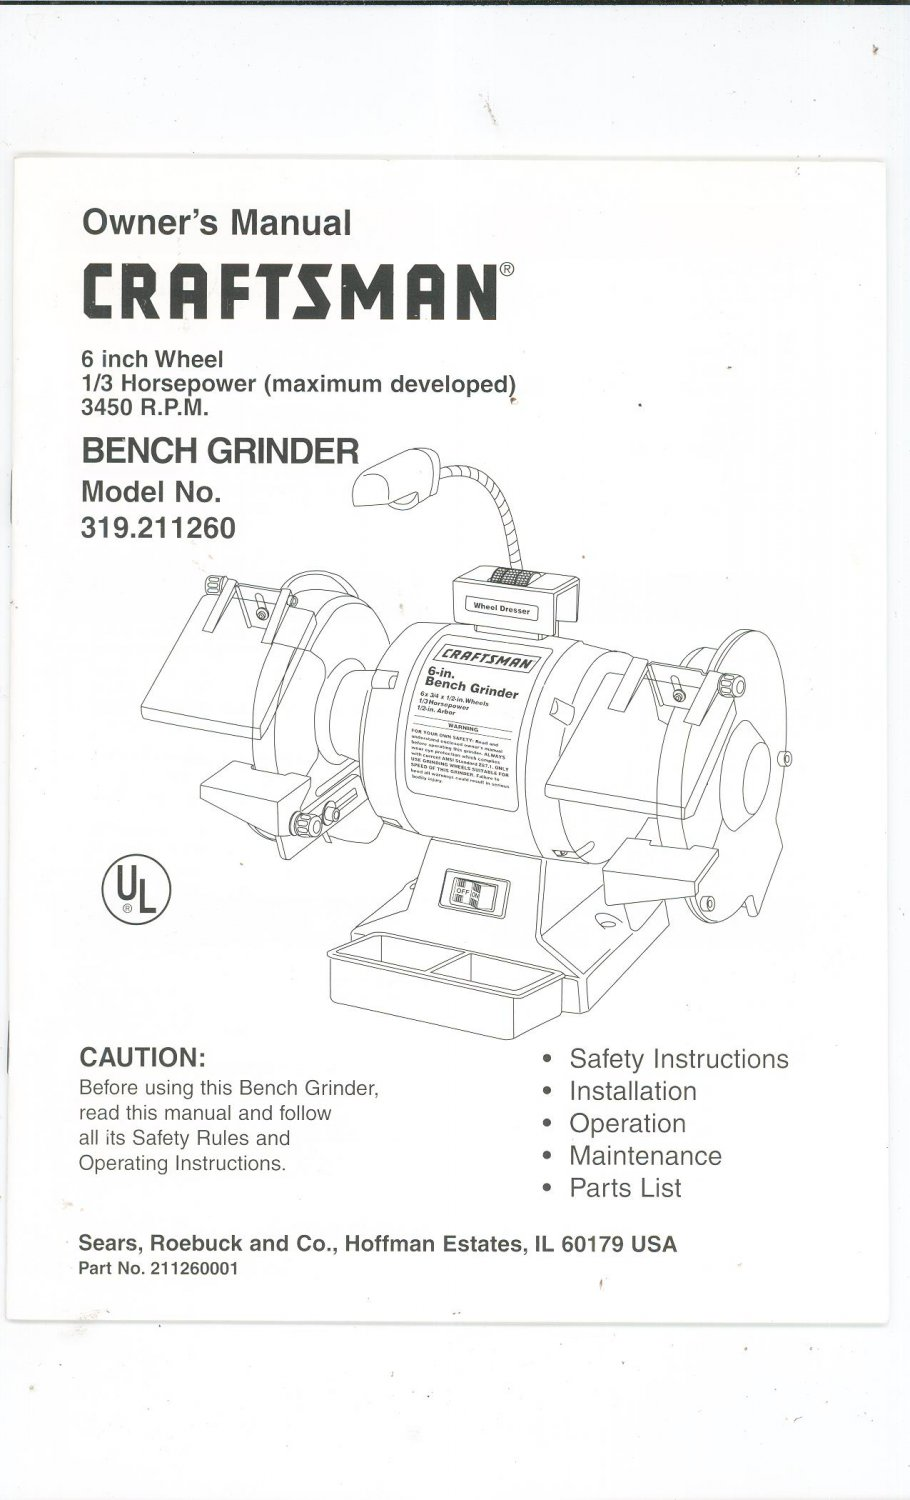 Sears Craftsman 8in Bench Grinder 319 190631 Wiring Diagram Free. Craftsman 6 Inch Bench Grinder 1 3 Hp New Vintage Heavy Duty Bg150 At Sears. Wiring. Gr150 Delta Bench Grinder Wiring Diagram At Scoala.co